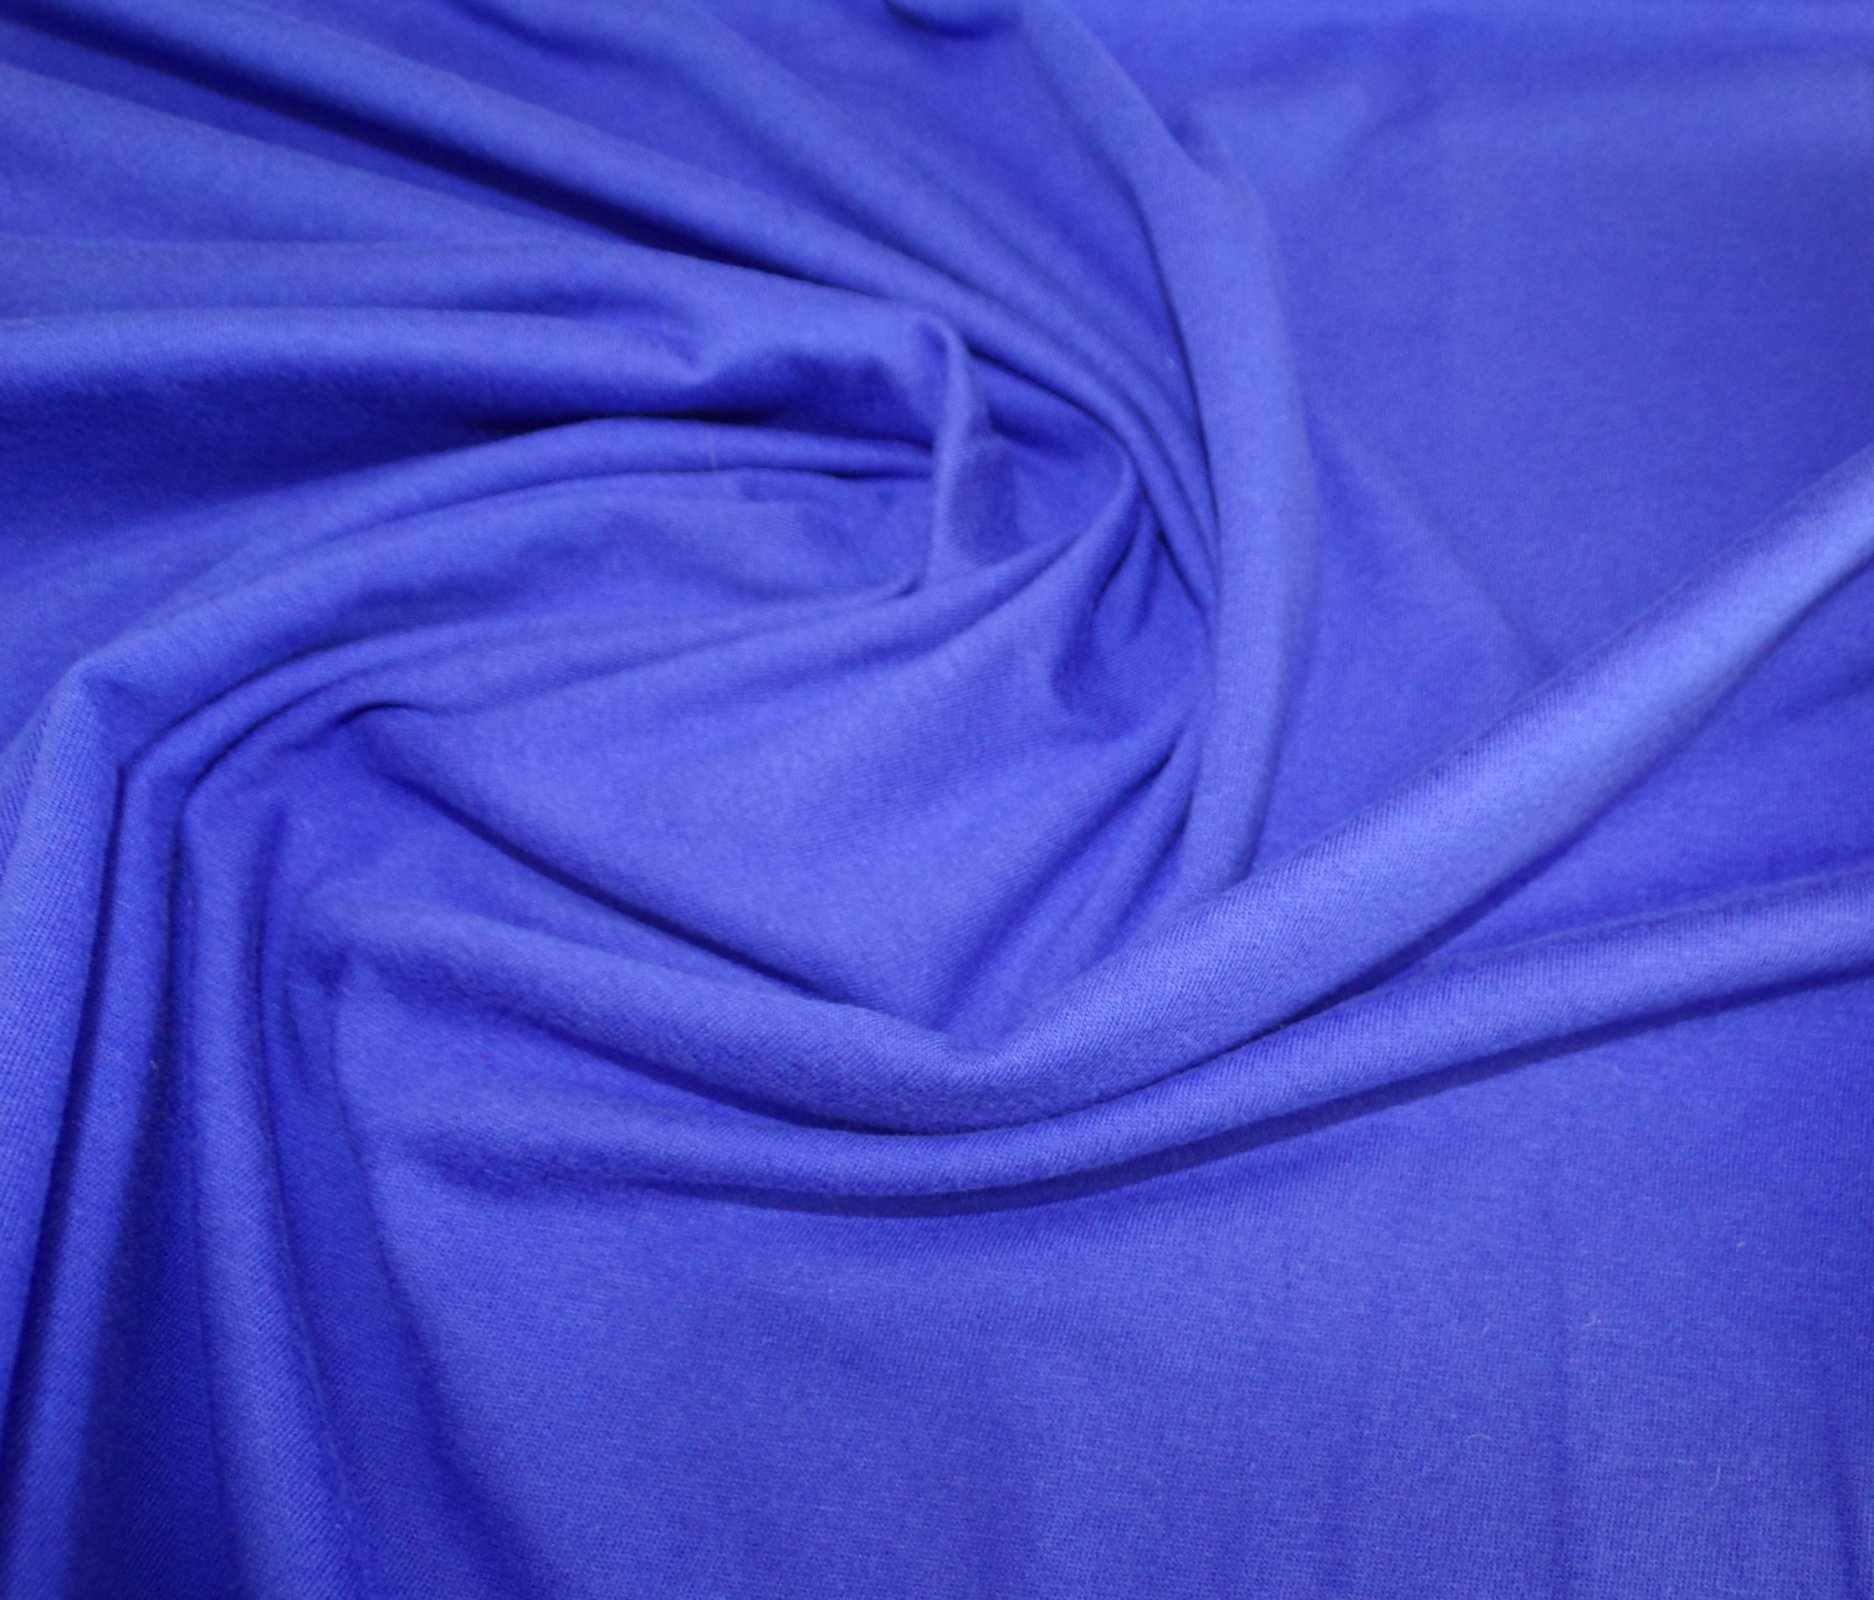 Cotton Jersey - Bright Purpley Blue